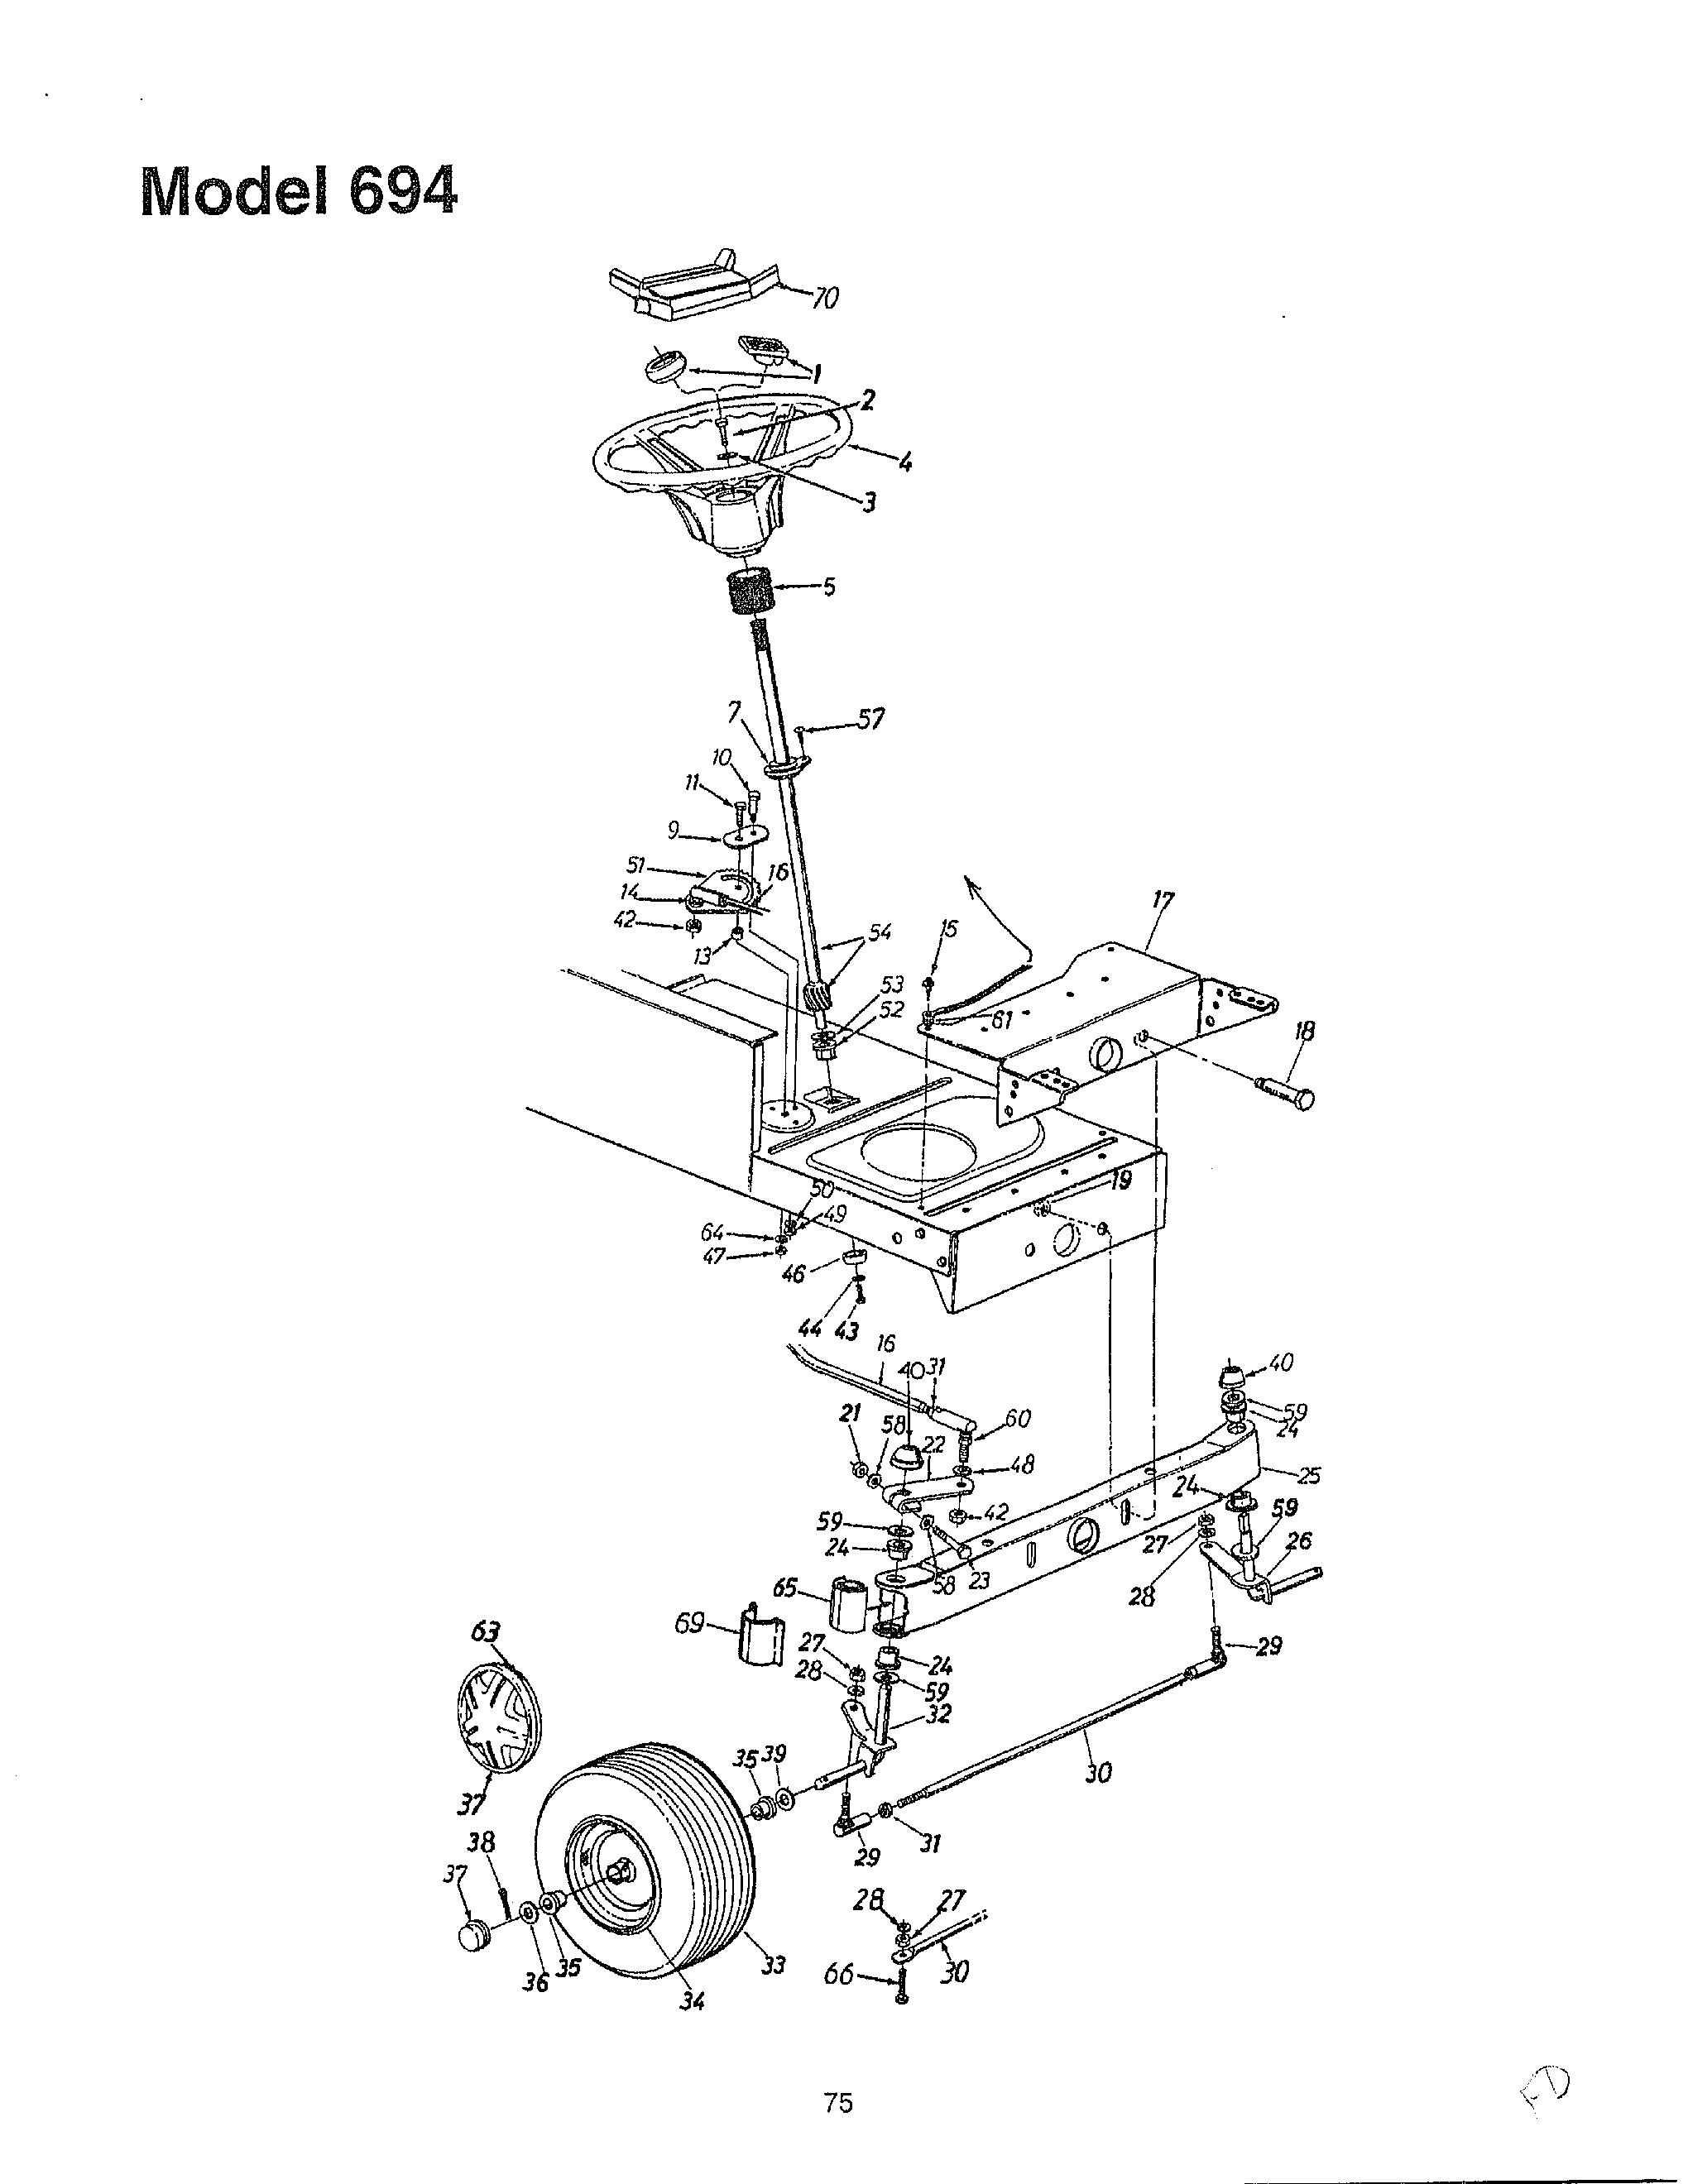 Sears Lawn Tractor Wiring Diagram. Parts. Wiring Diagram